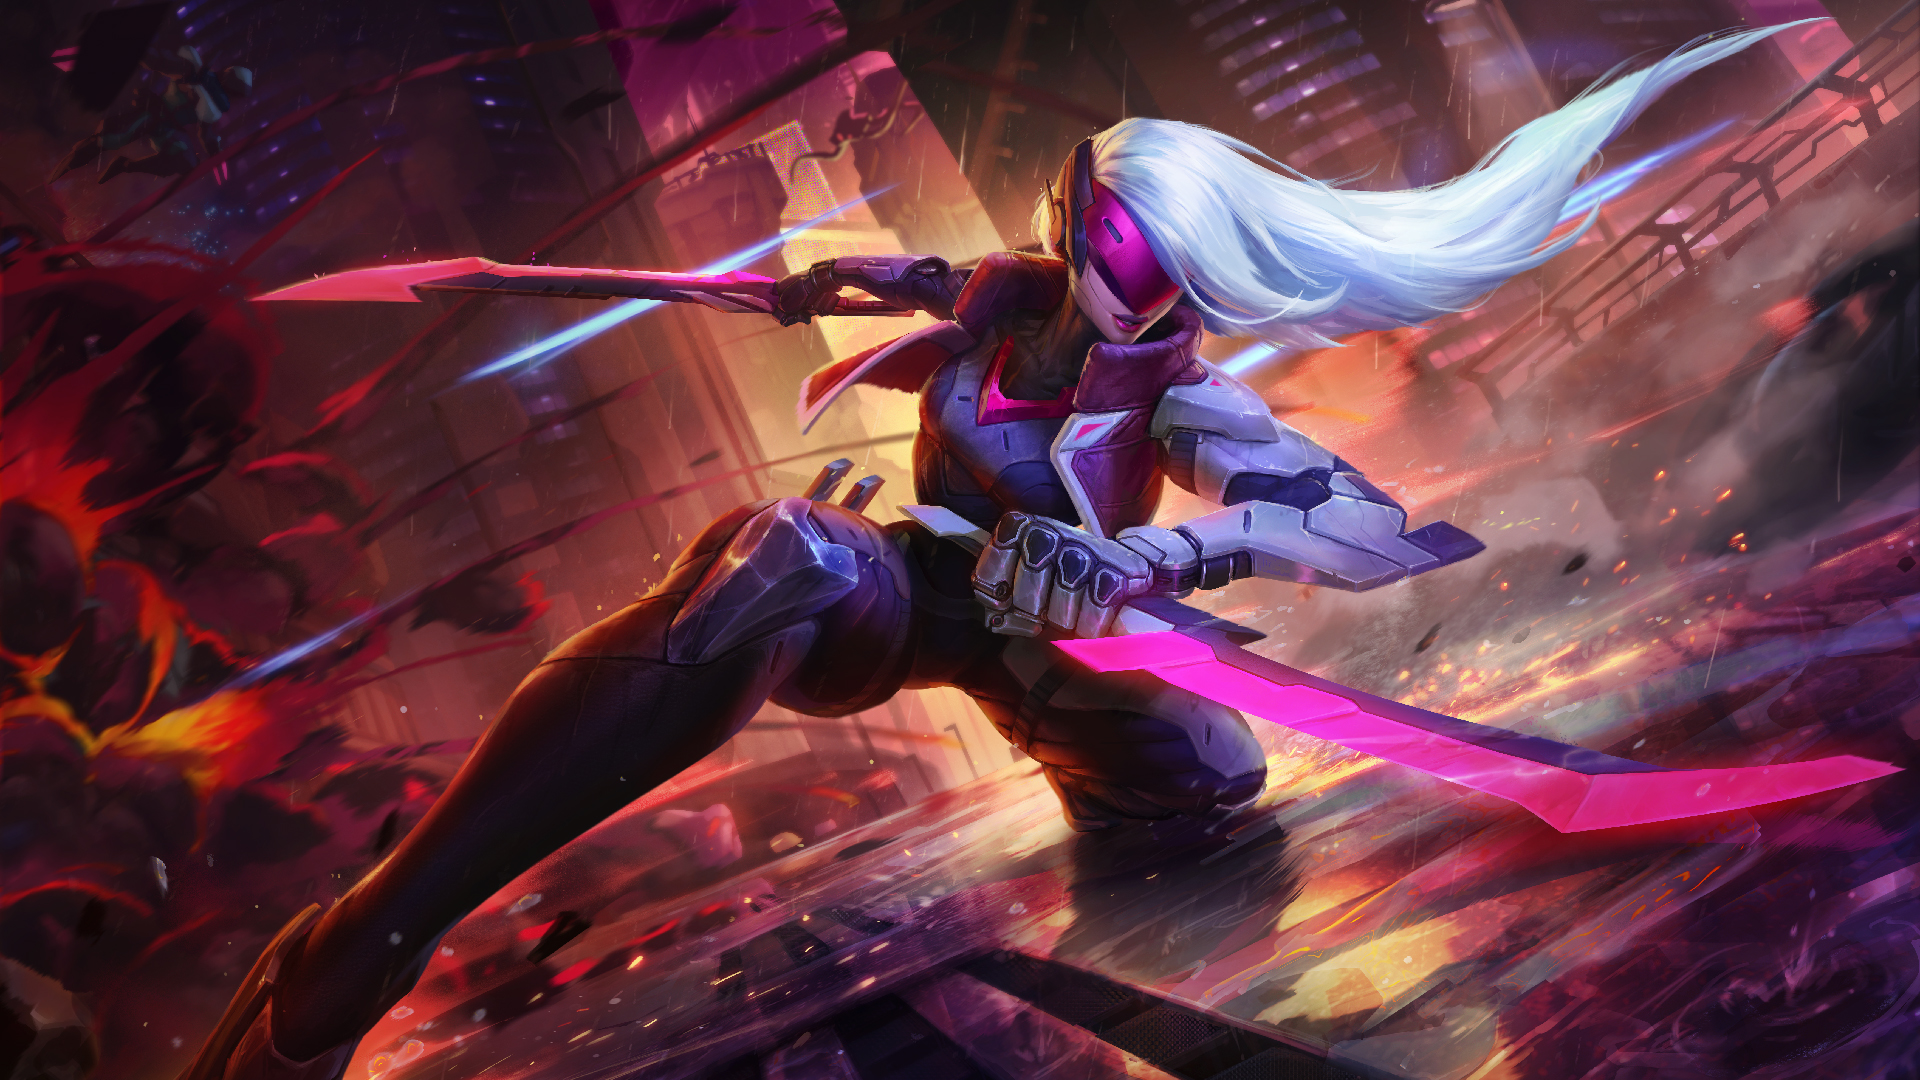 Project Katarina League of Legends5033010023 - Project Katarina League of Legends - Project, Legends, League, Katarina, Death